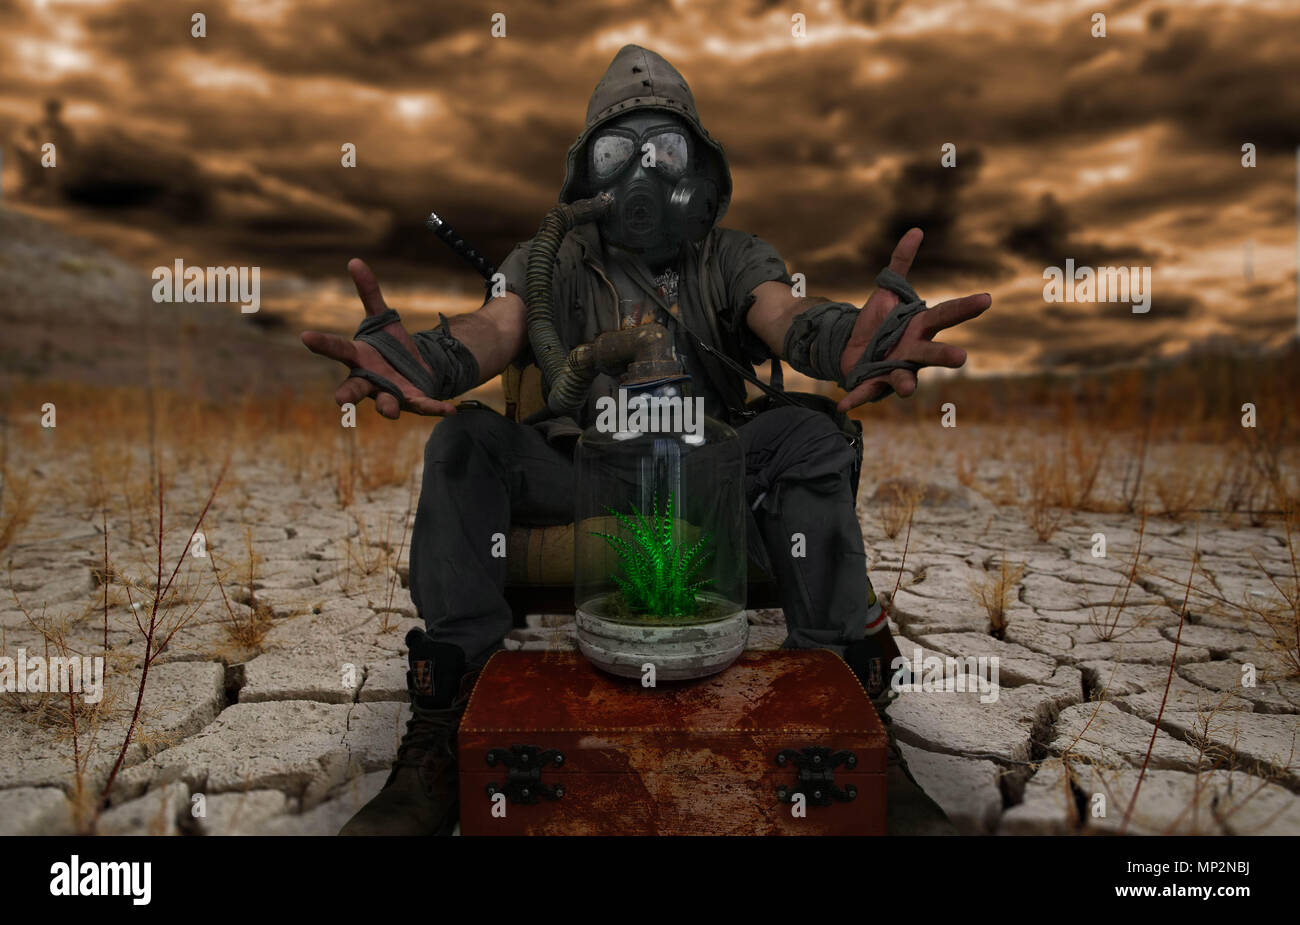 Nuclear post apocalypse survivors concept - Stock Image